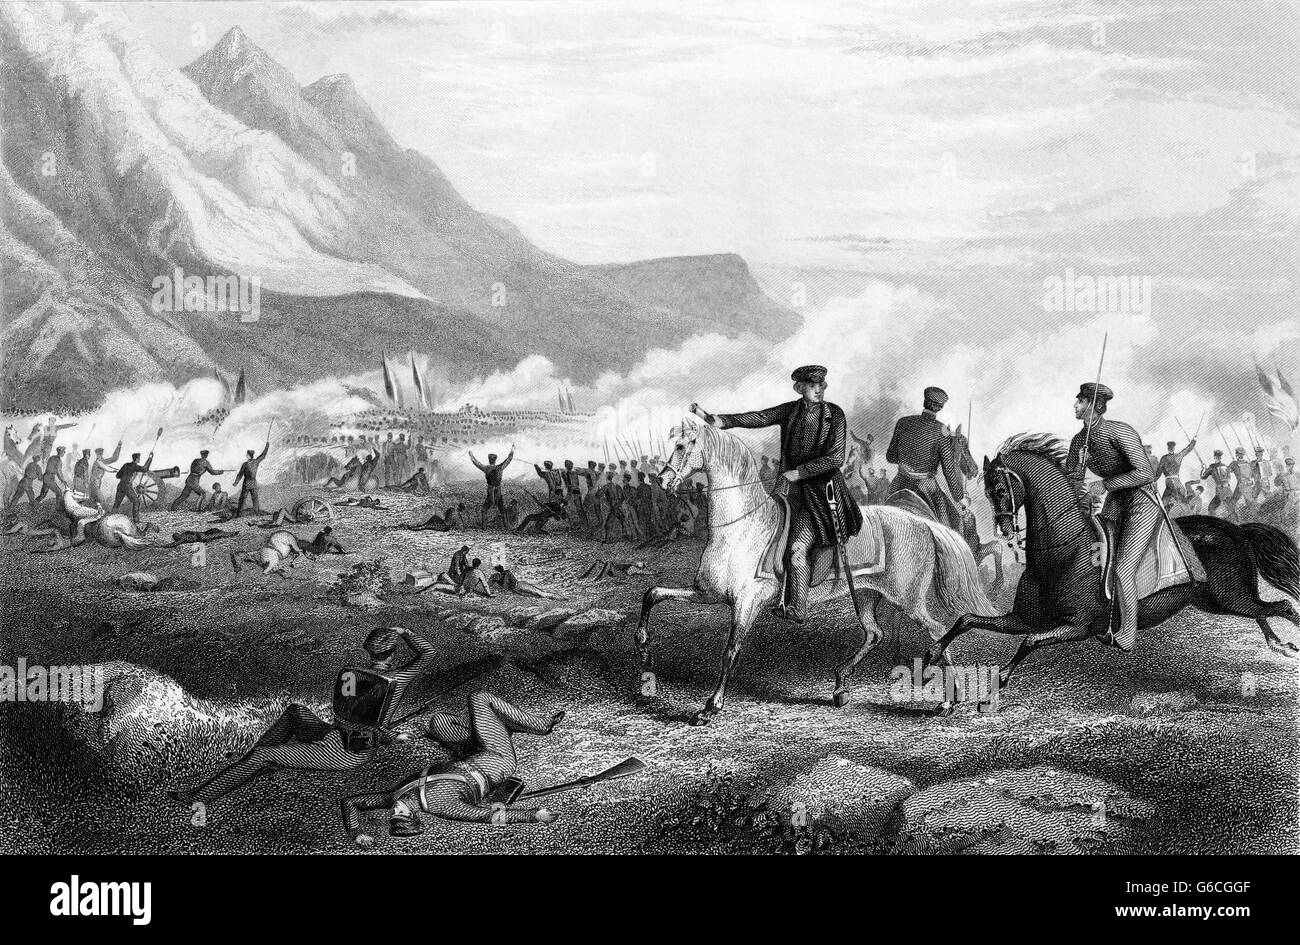 1840s FEBRUARY 1847 GENERAL ZACHARY TAYLOR DIRECTING TROOP BATTLE OF BUENA VISTA DURING MEXICAN AMERICAN WAR - Stock Image